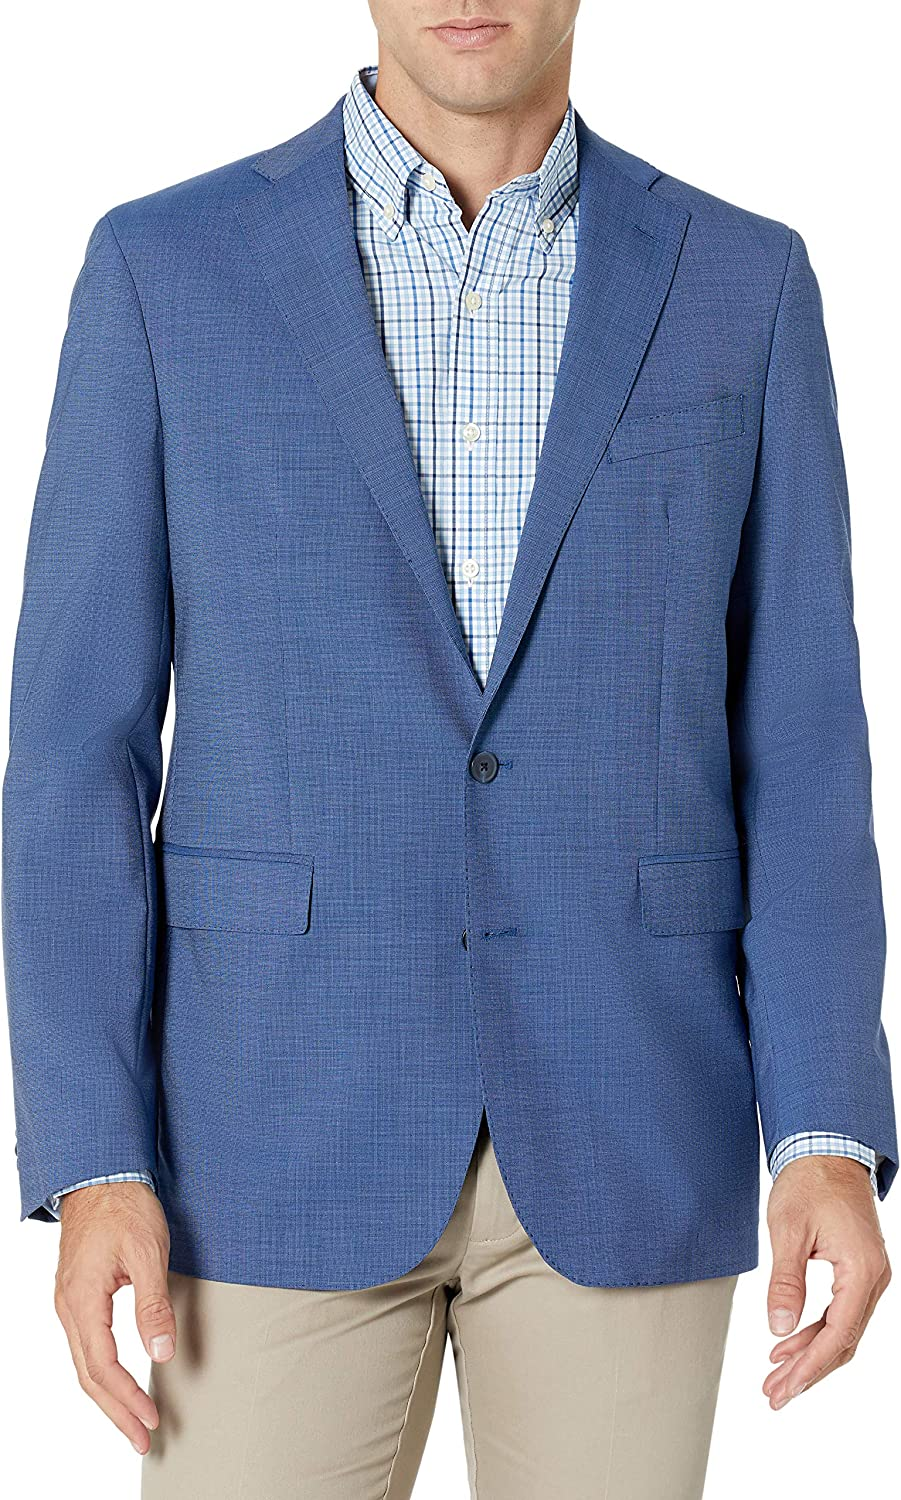 Cole Haan Men's Slim Fit Milwaukee Mall Clearance SALE! Limited time! Jacket Stretch Separates-Custom Suit